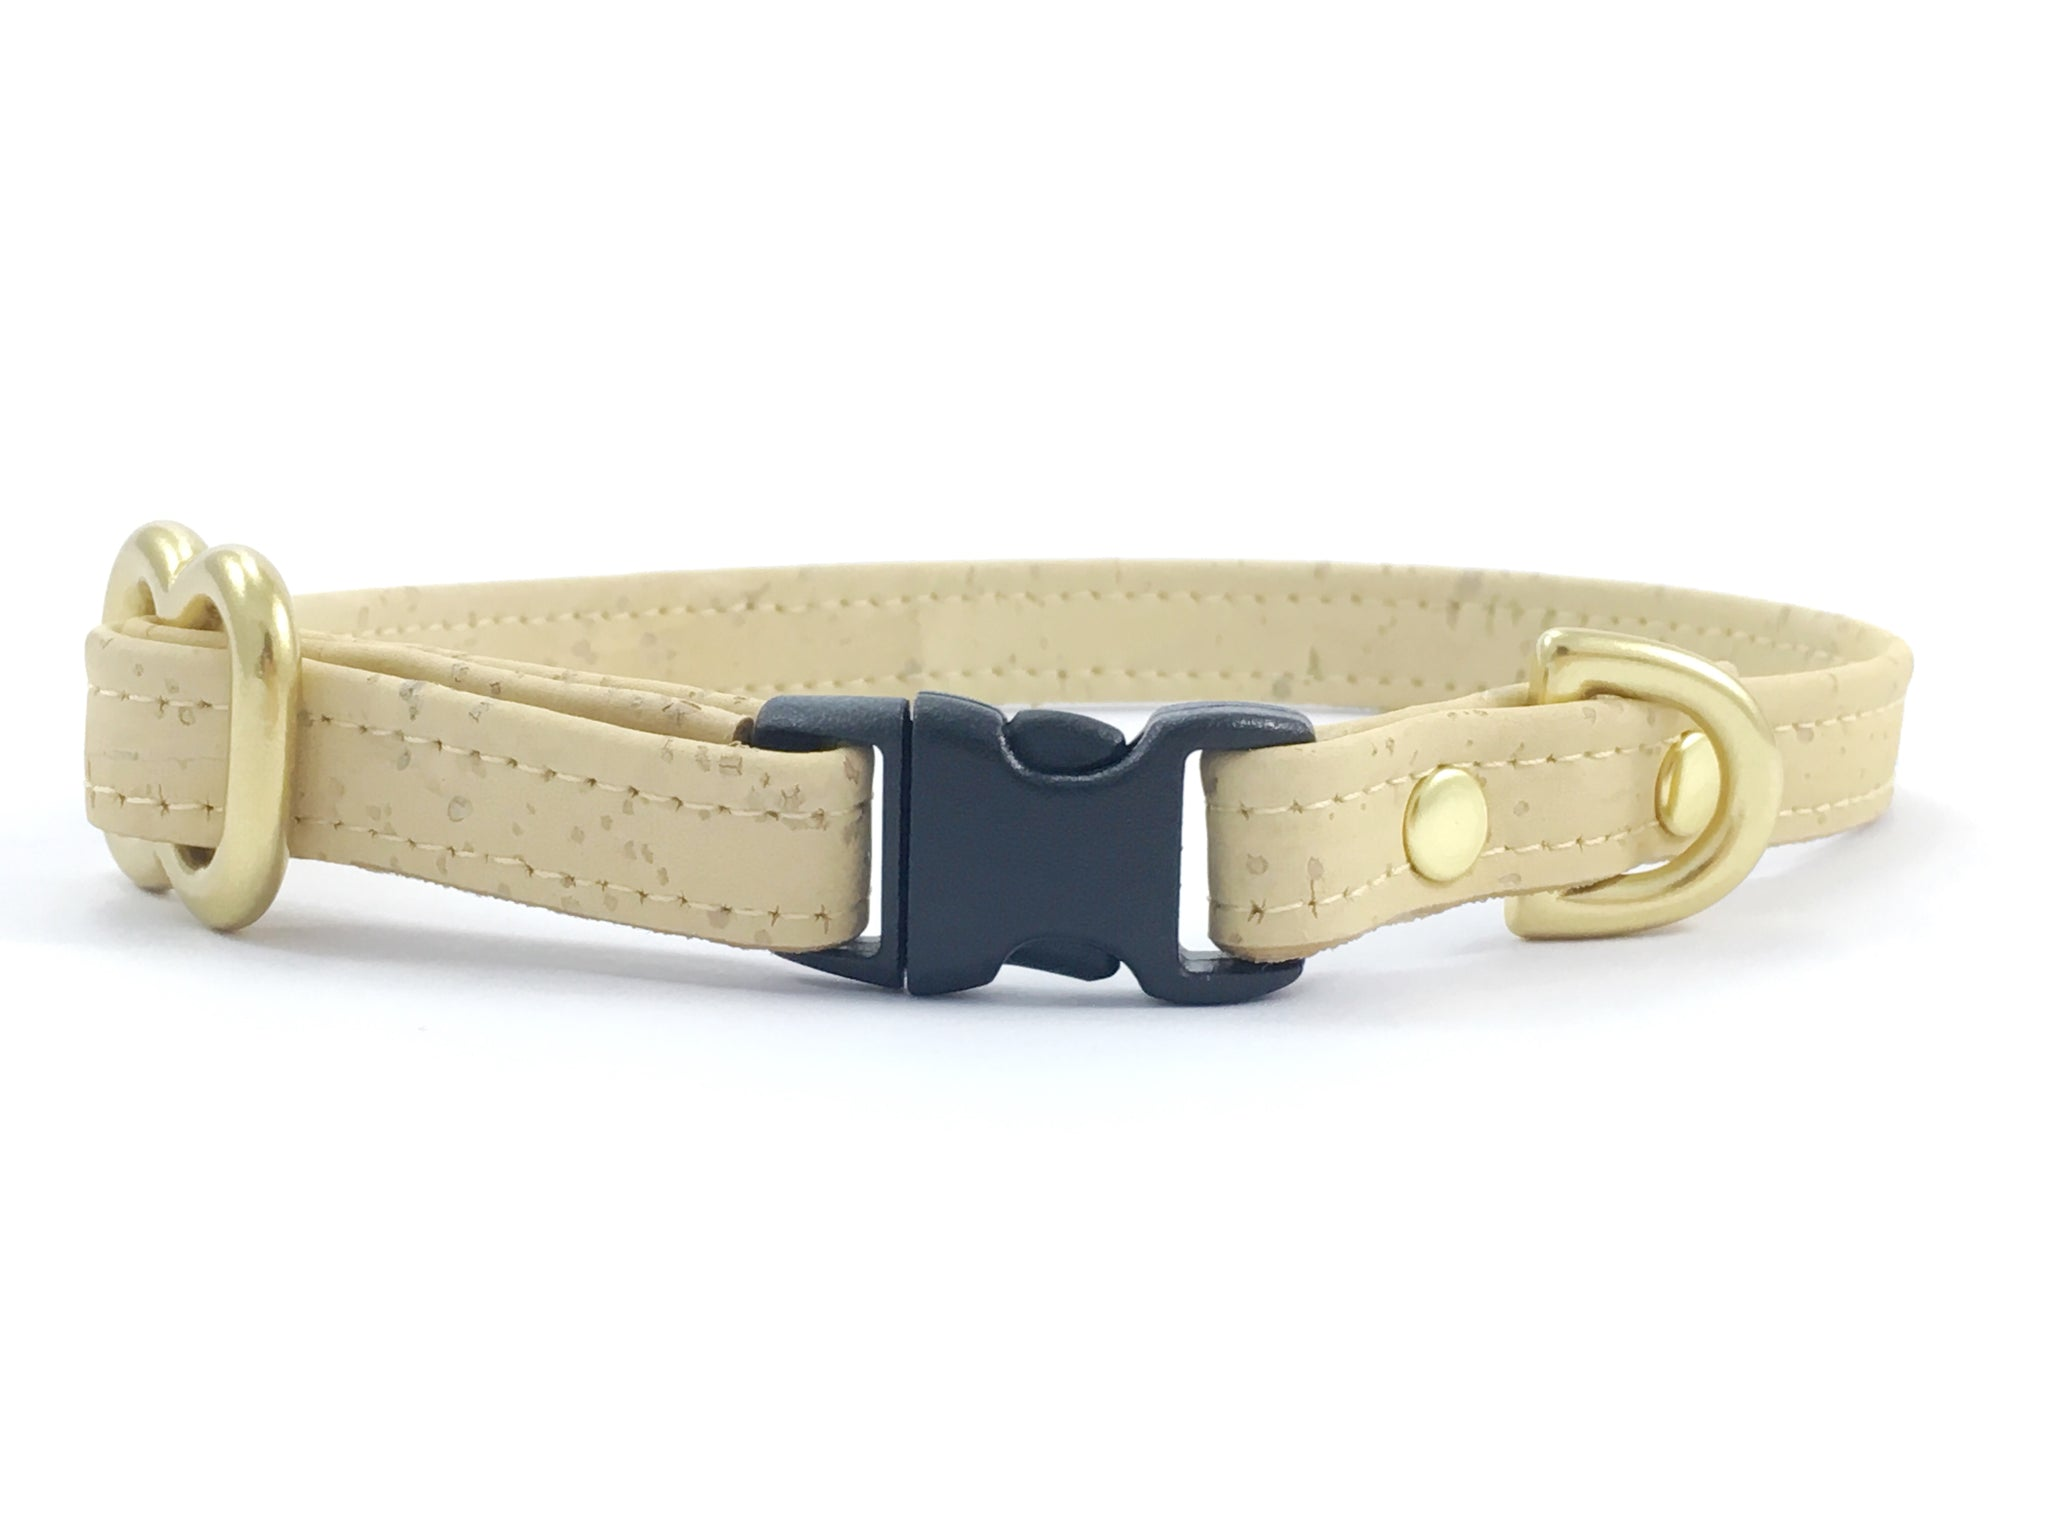 Luxury miniature/toy dog collar in pastel yellow vegan cork leather, suitable for miniature dachshunds, chihuahuas and Maltese